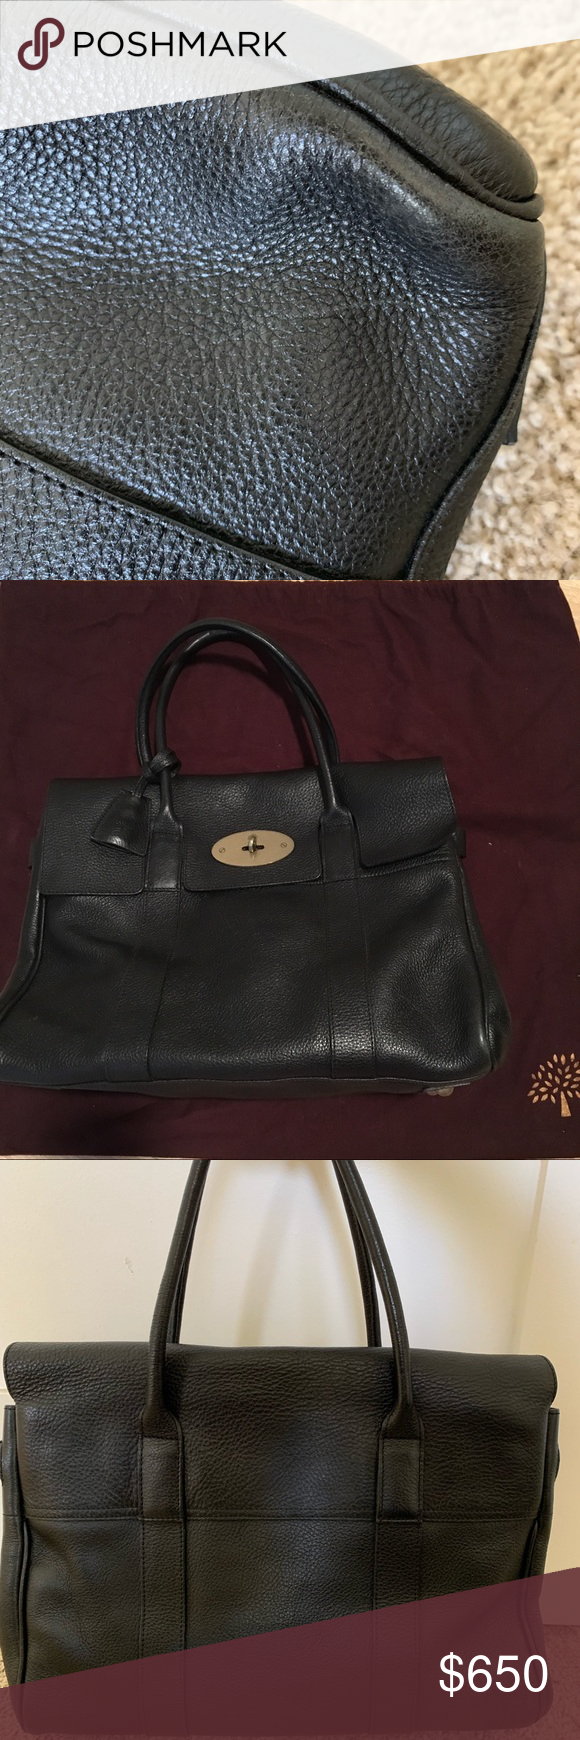 Mulberry Bayswater bag Almost brand new! Gently used and bottoms look totally fine. Inside is also very clean. There is a little scratch on the bottom front but barely can see it. Mulberry Bags Totes #mulberrybag Mulberry Bayswater bag Almost brand new! Gently used and bottoms look totally fine. Inside is also very clean. There is a little scratch on the bottom front but barely can see it. Mulberry Bags Totes #mulberrybag